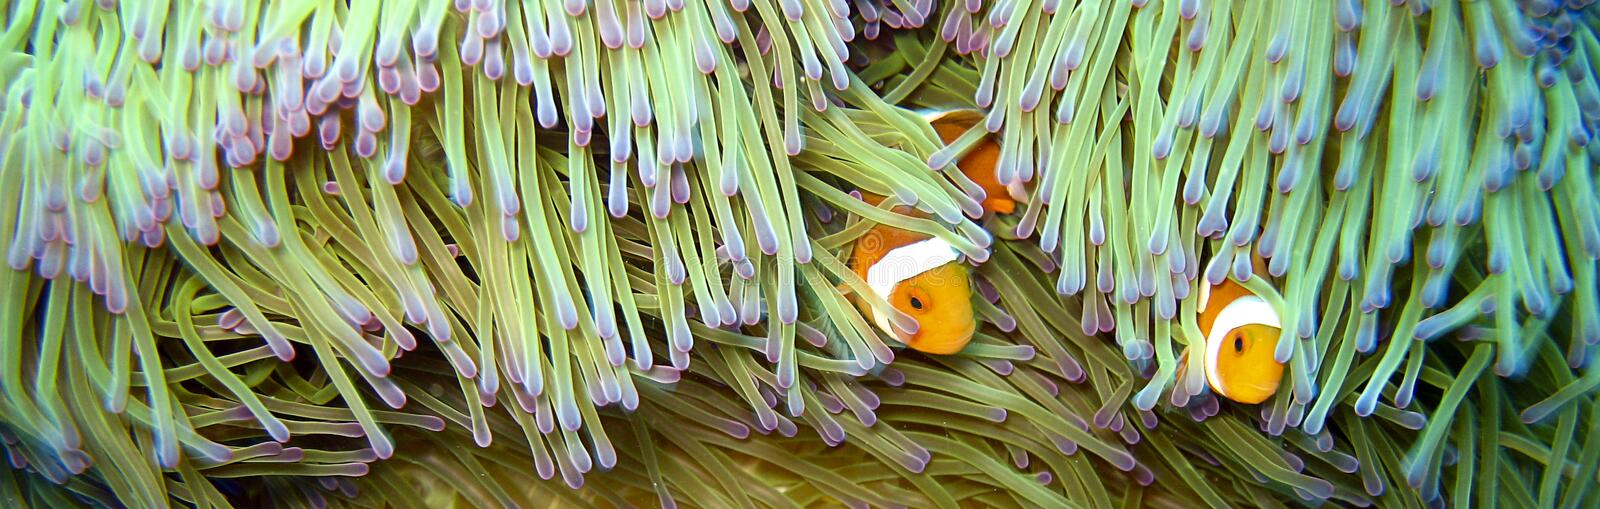 Anemone fish. (clown fish) hiding in an anemone royalty free stock image